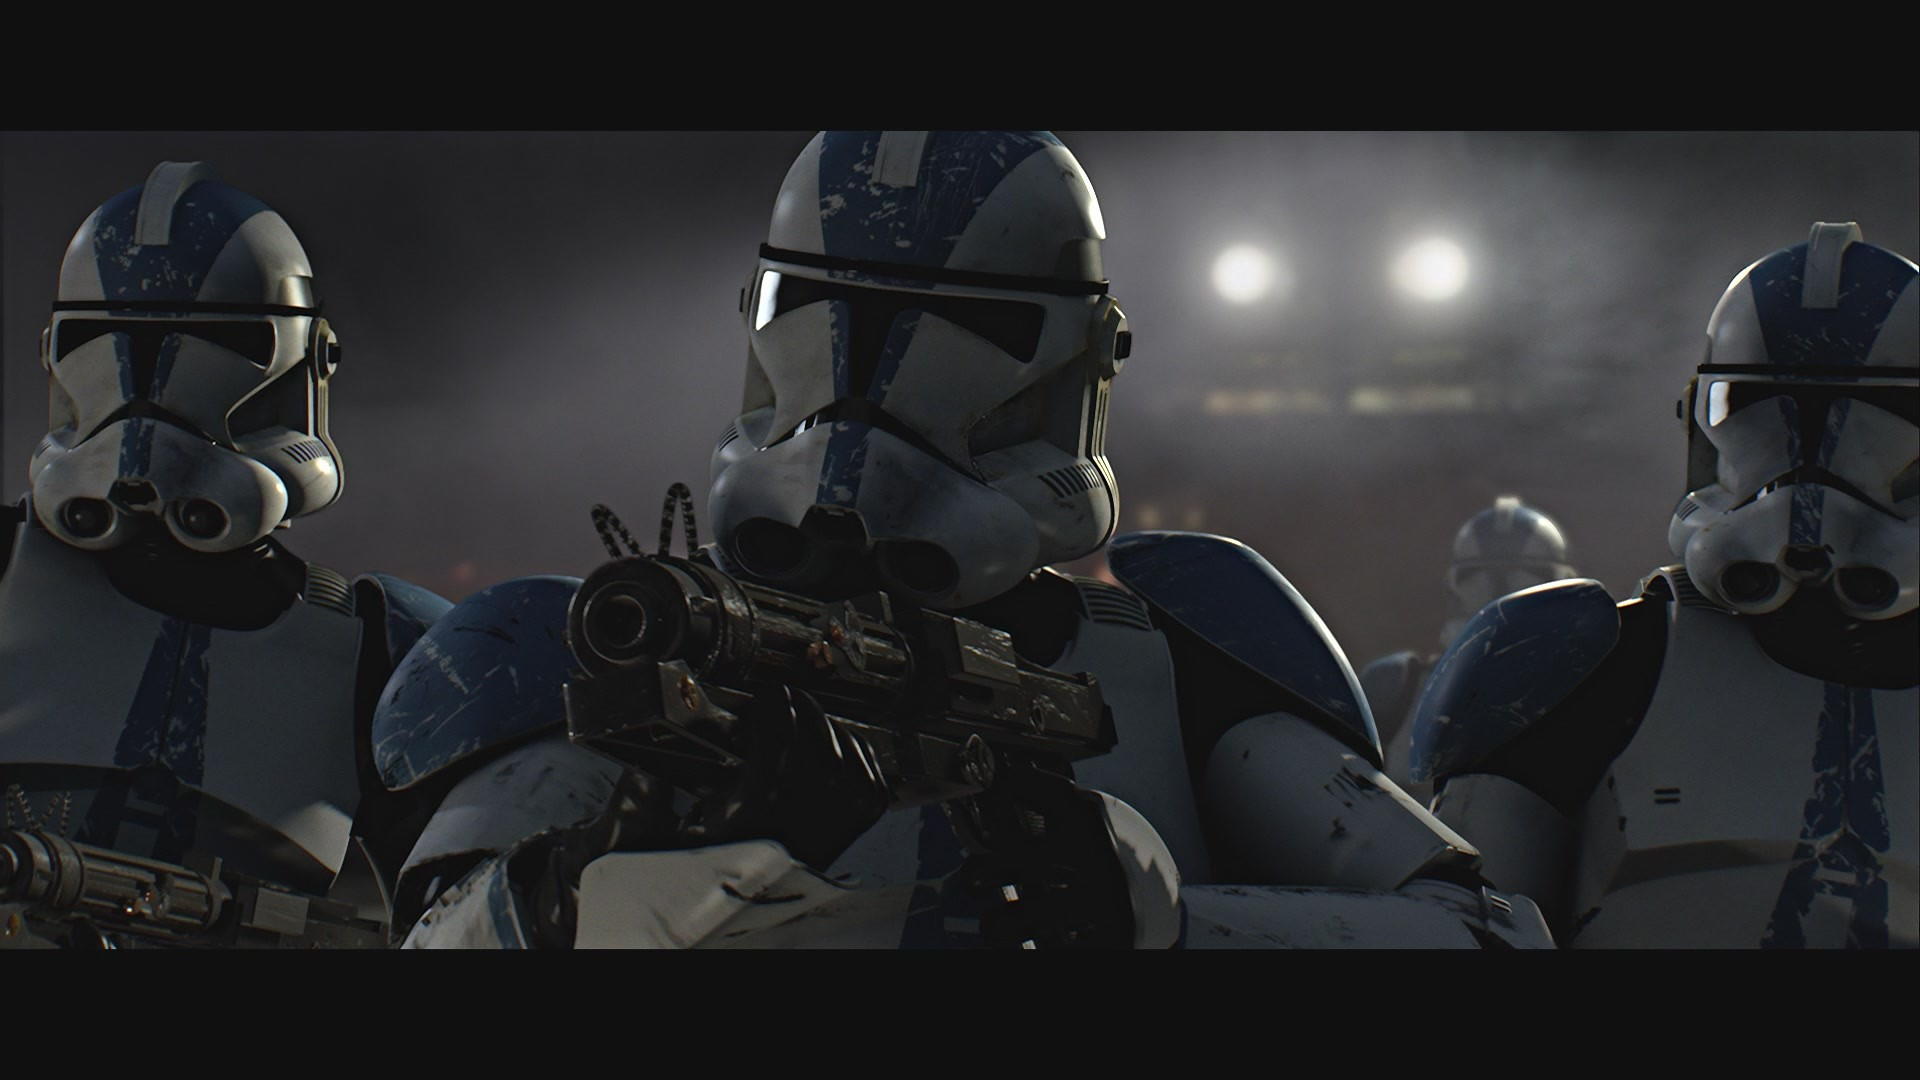 1920x1080 clone wars 501st wallpapers - photo #6